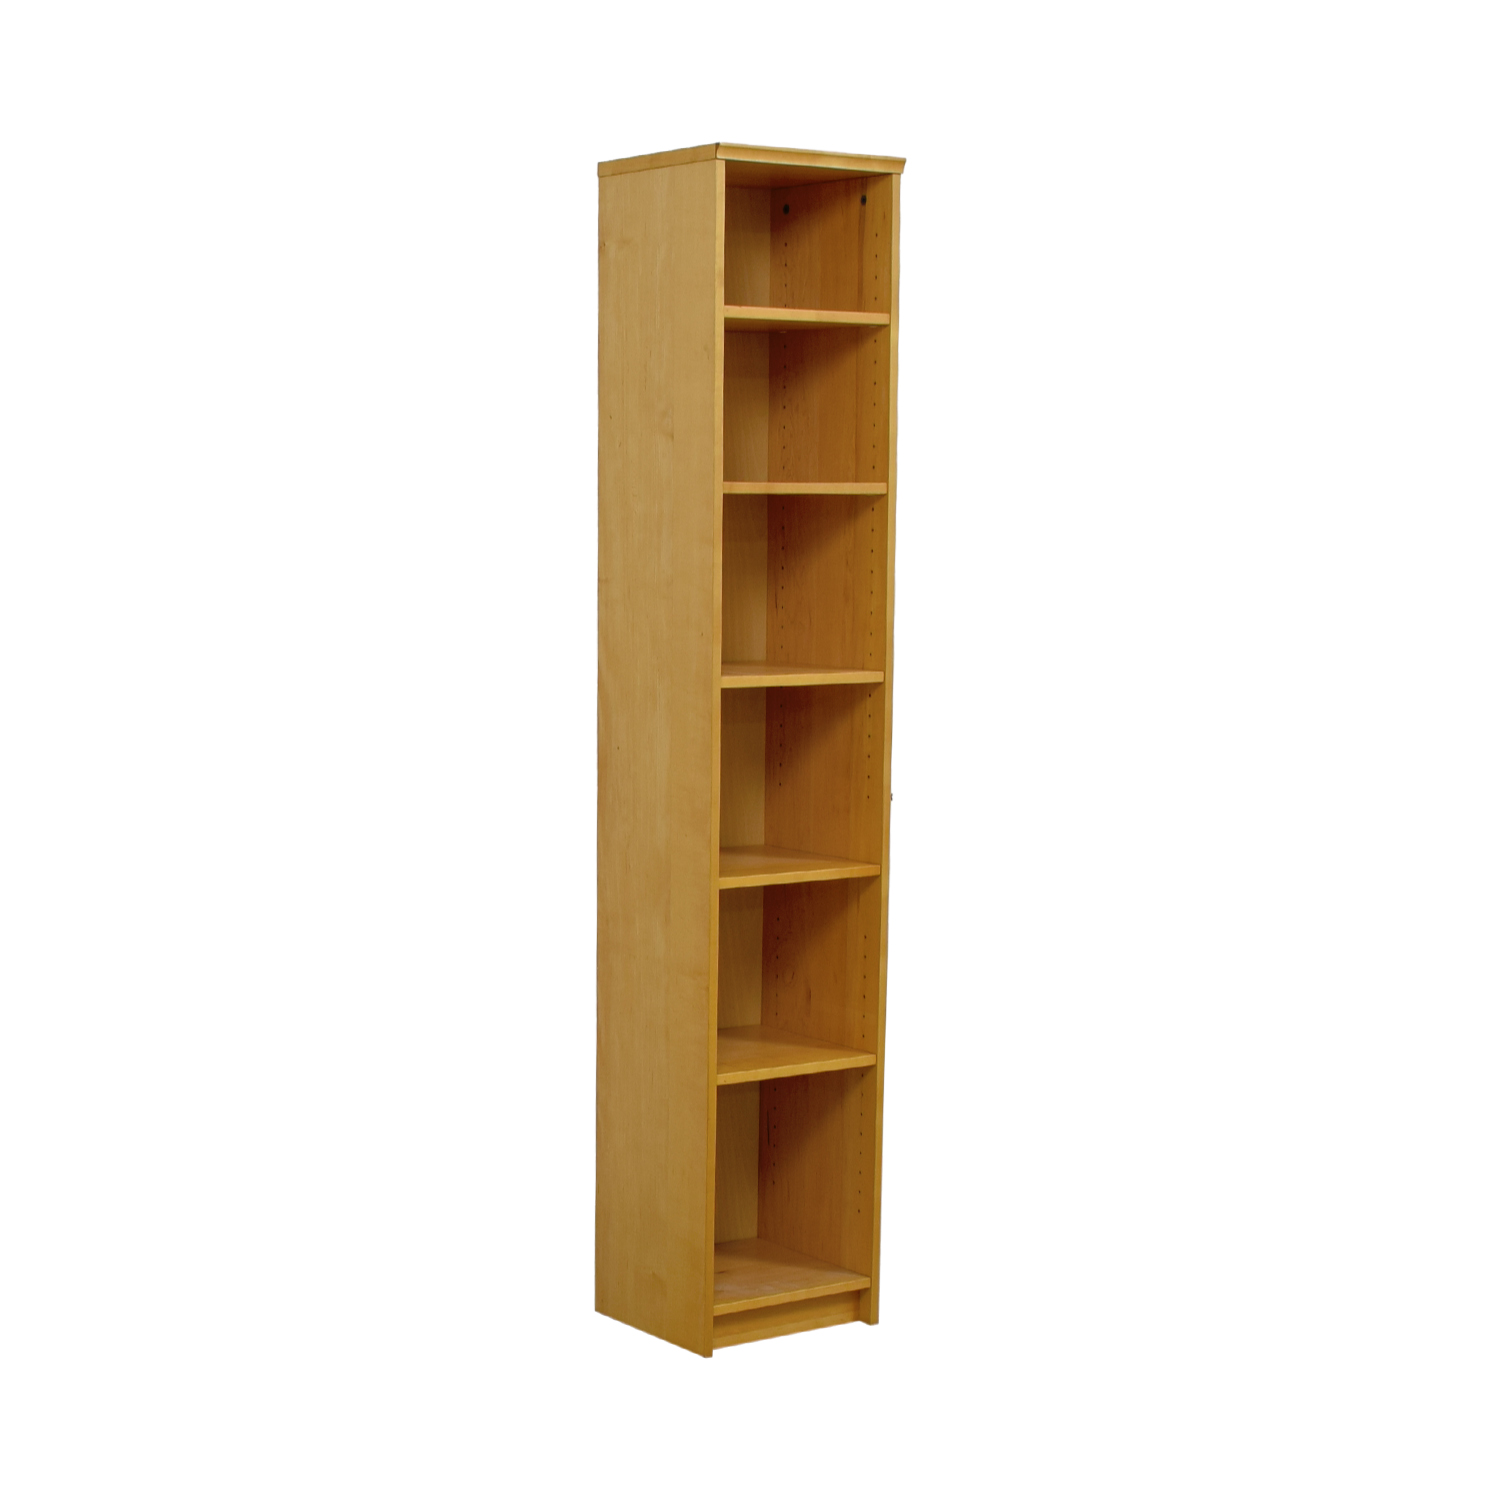 Tall Wood Bookshelf discount